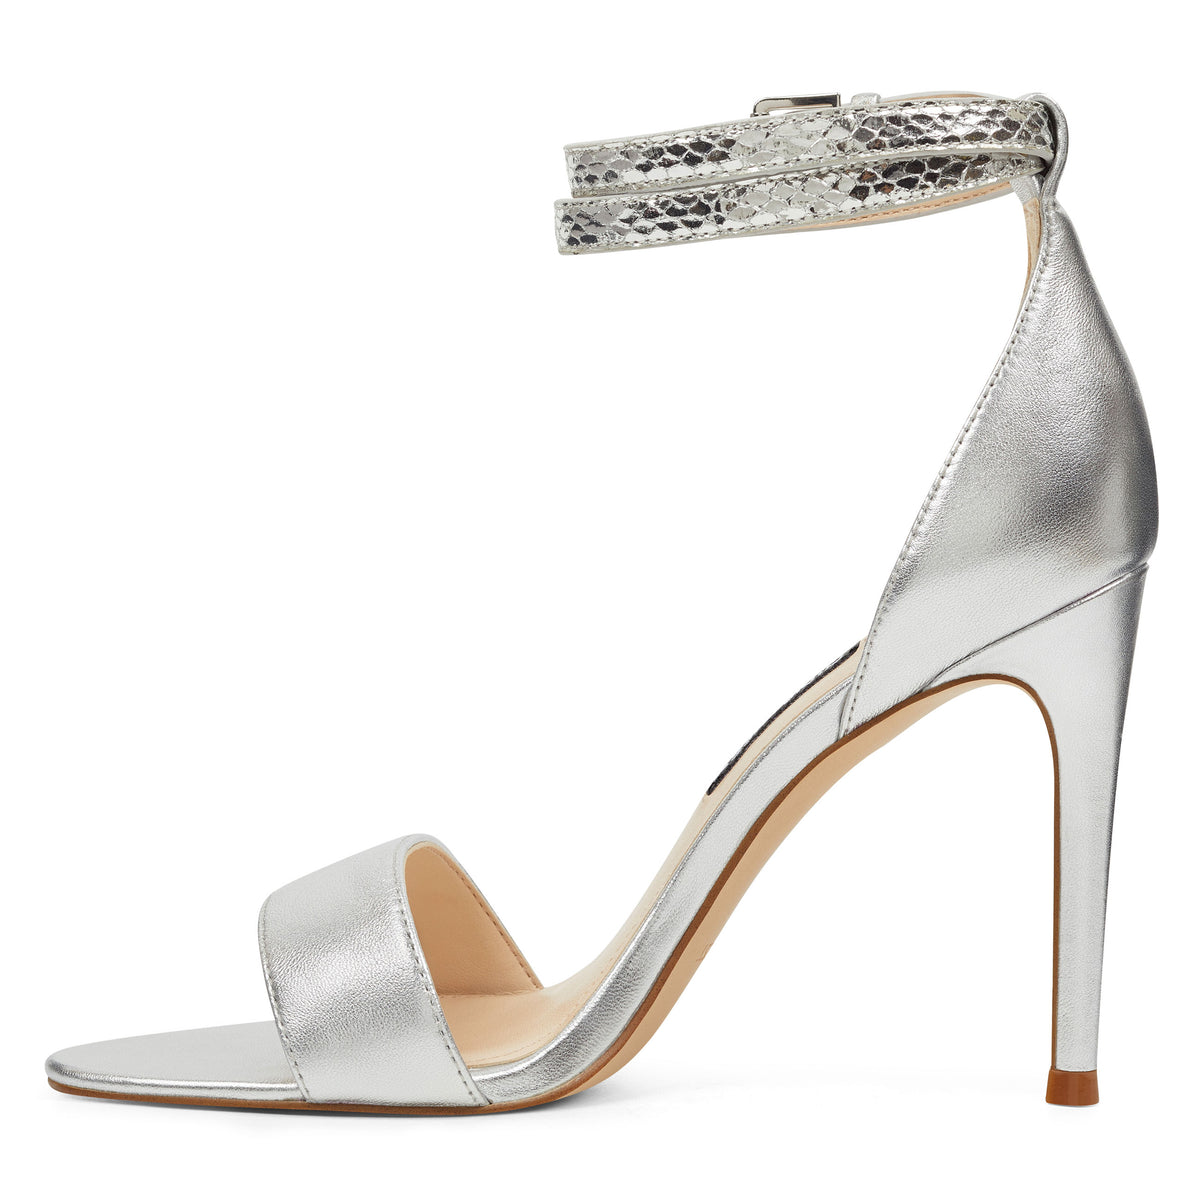 nika-ankle-strap-sandals-in-silver